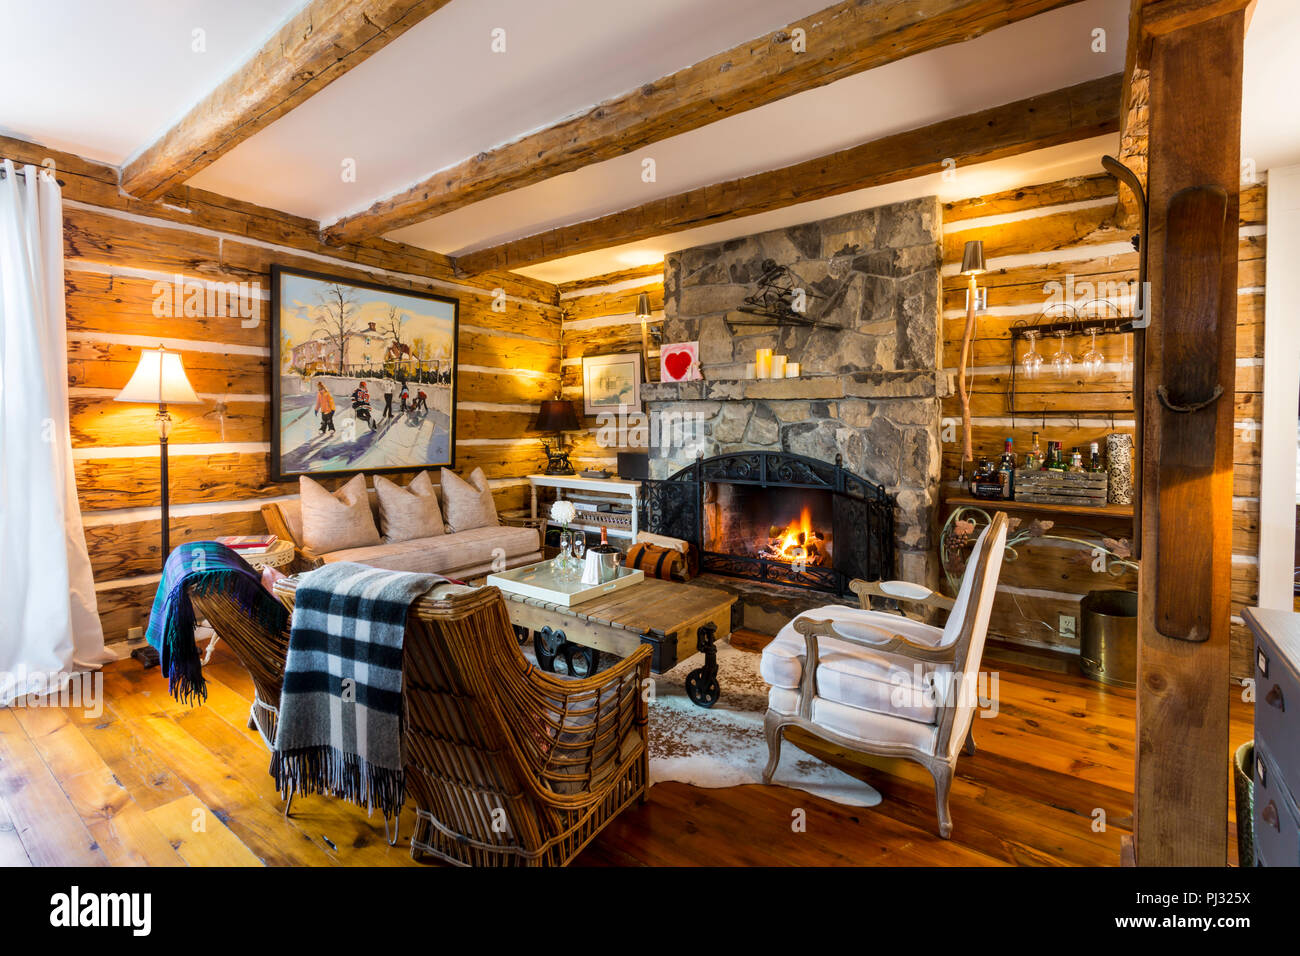 living room with fireplace in log house - Stock Image